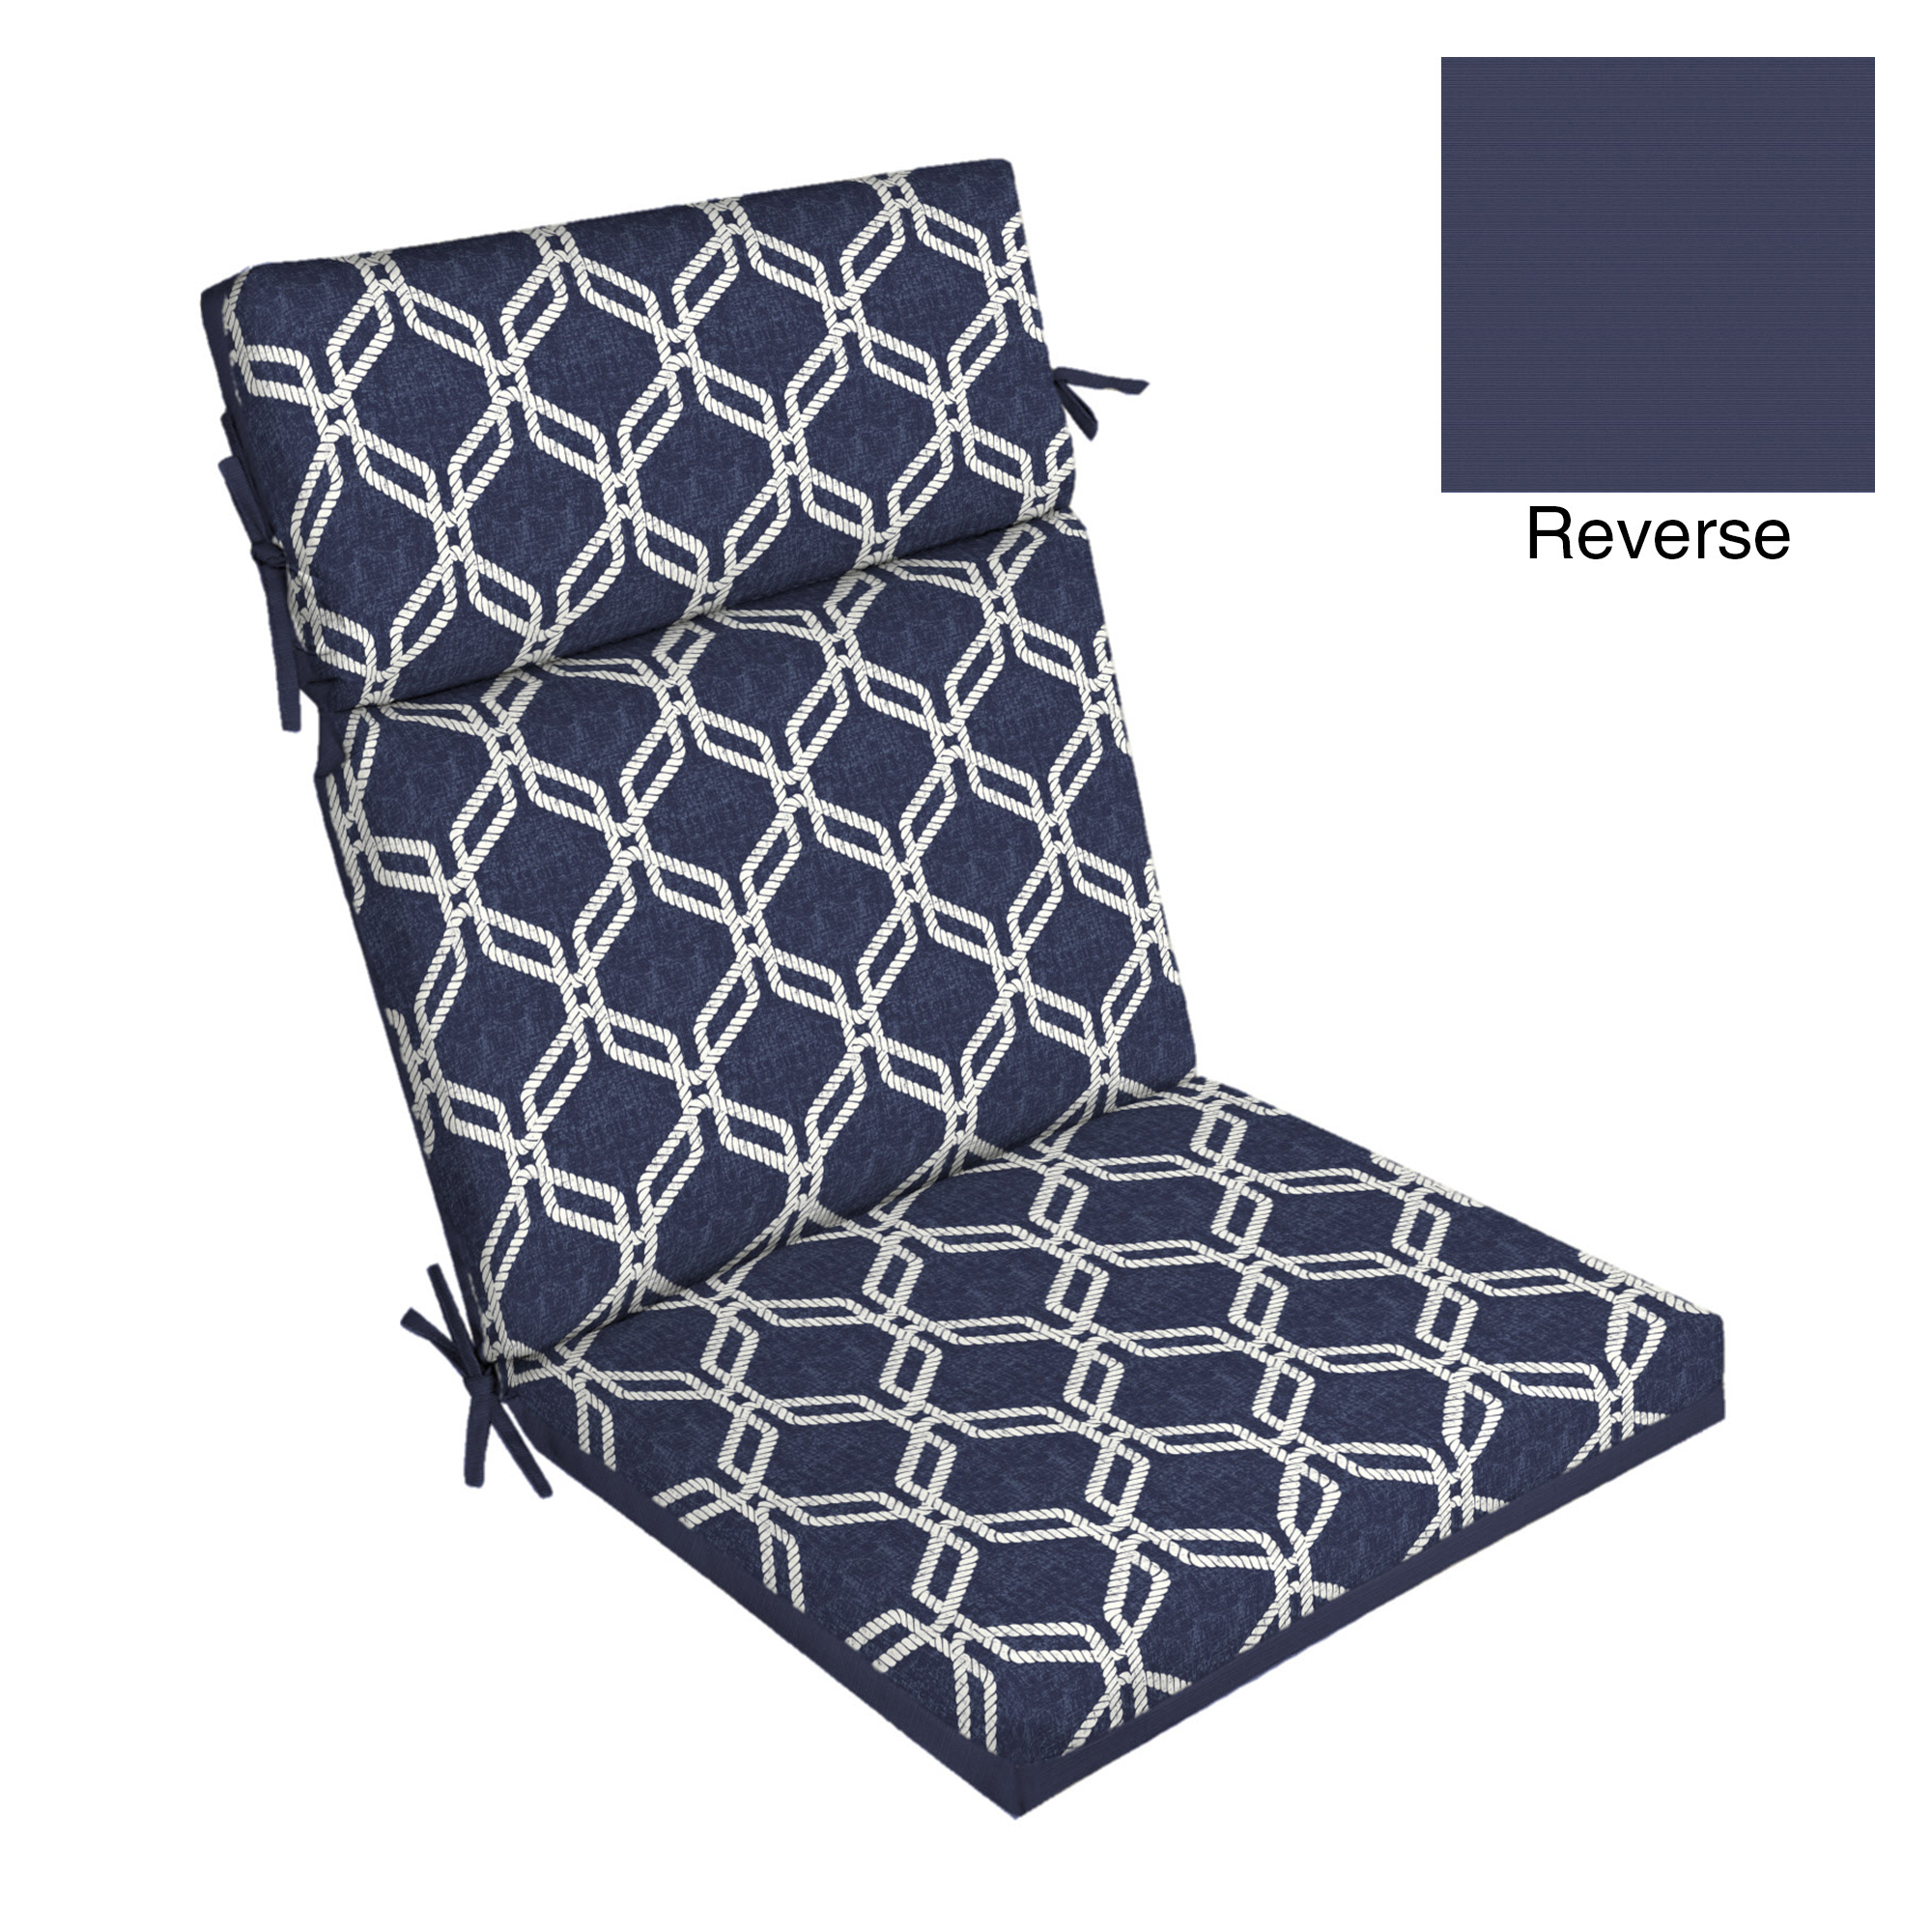 Better Homes & Gardens Hexagon Rope 44 x 21 in. Outdoor Dining Chair Cushion with EnviroGuard